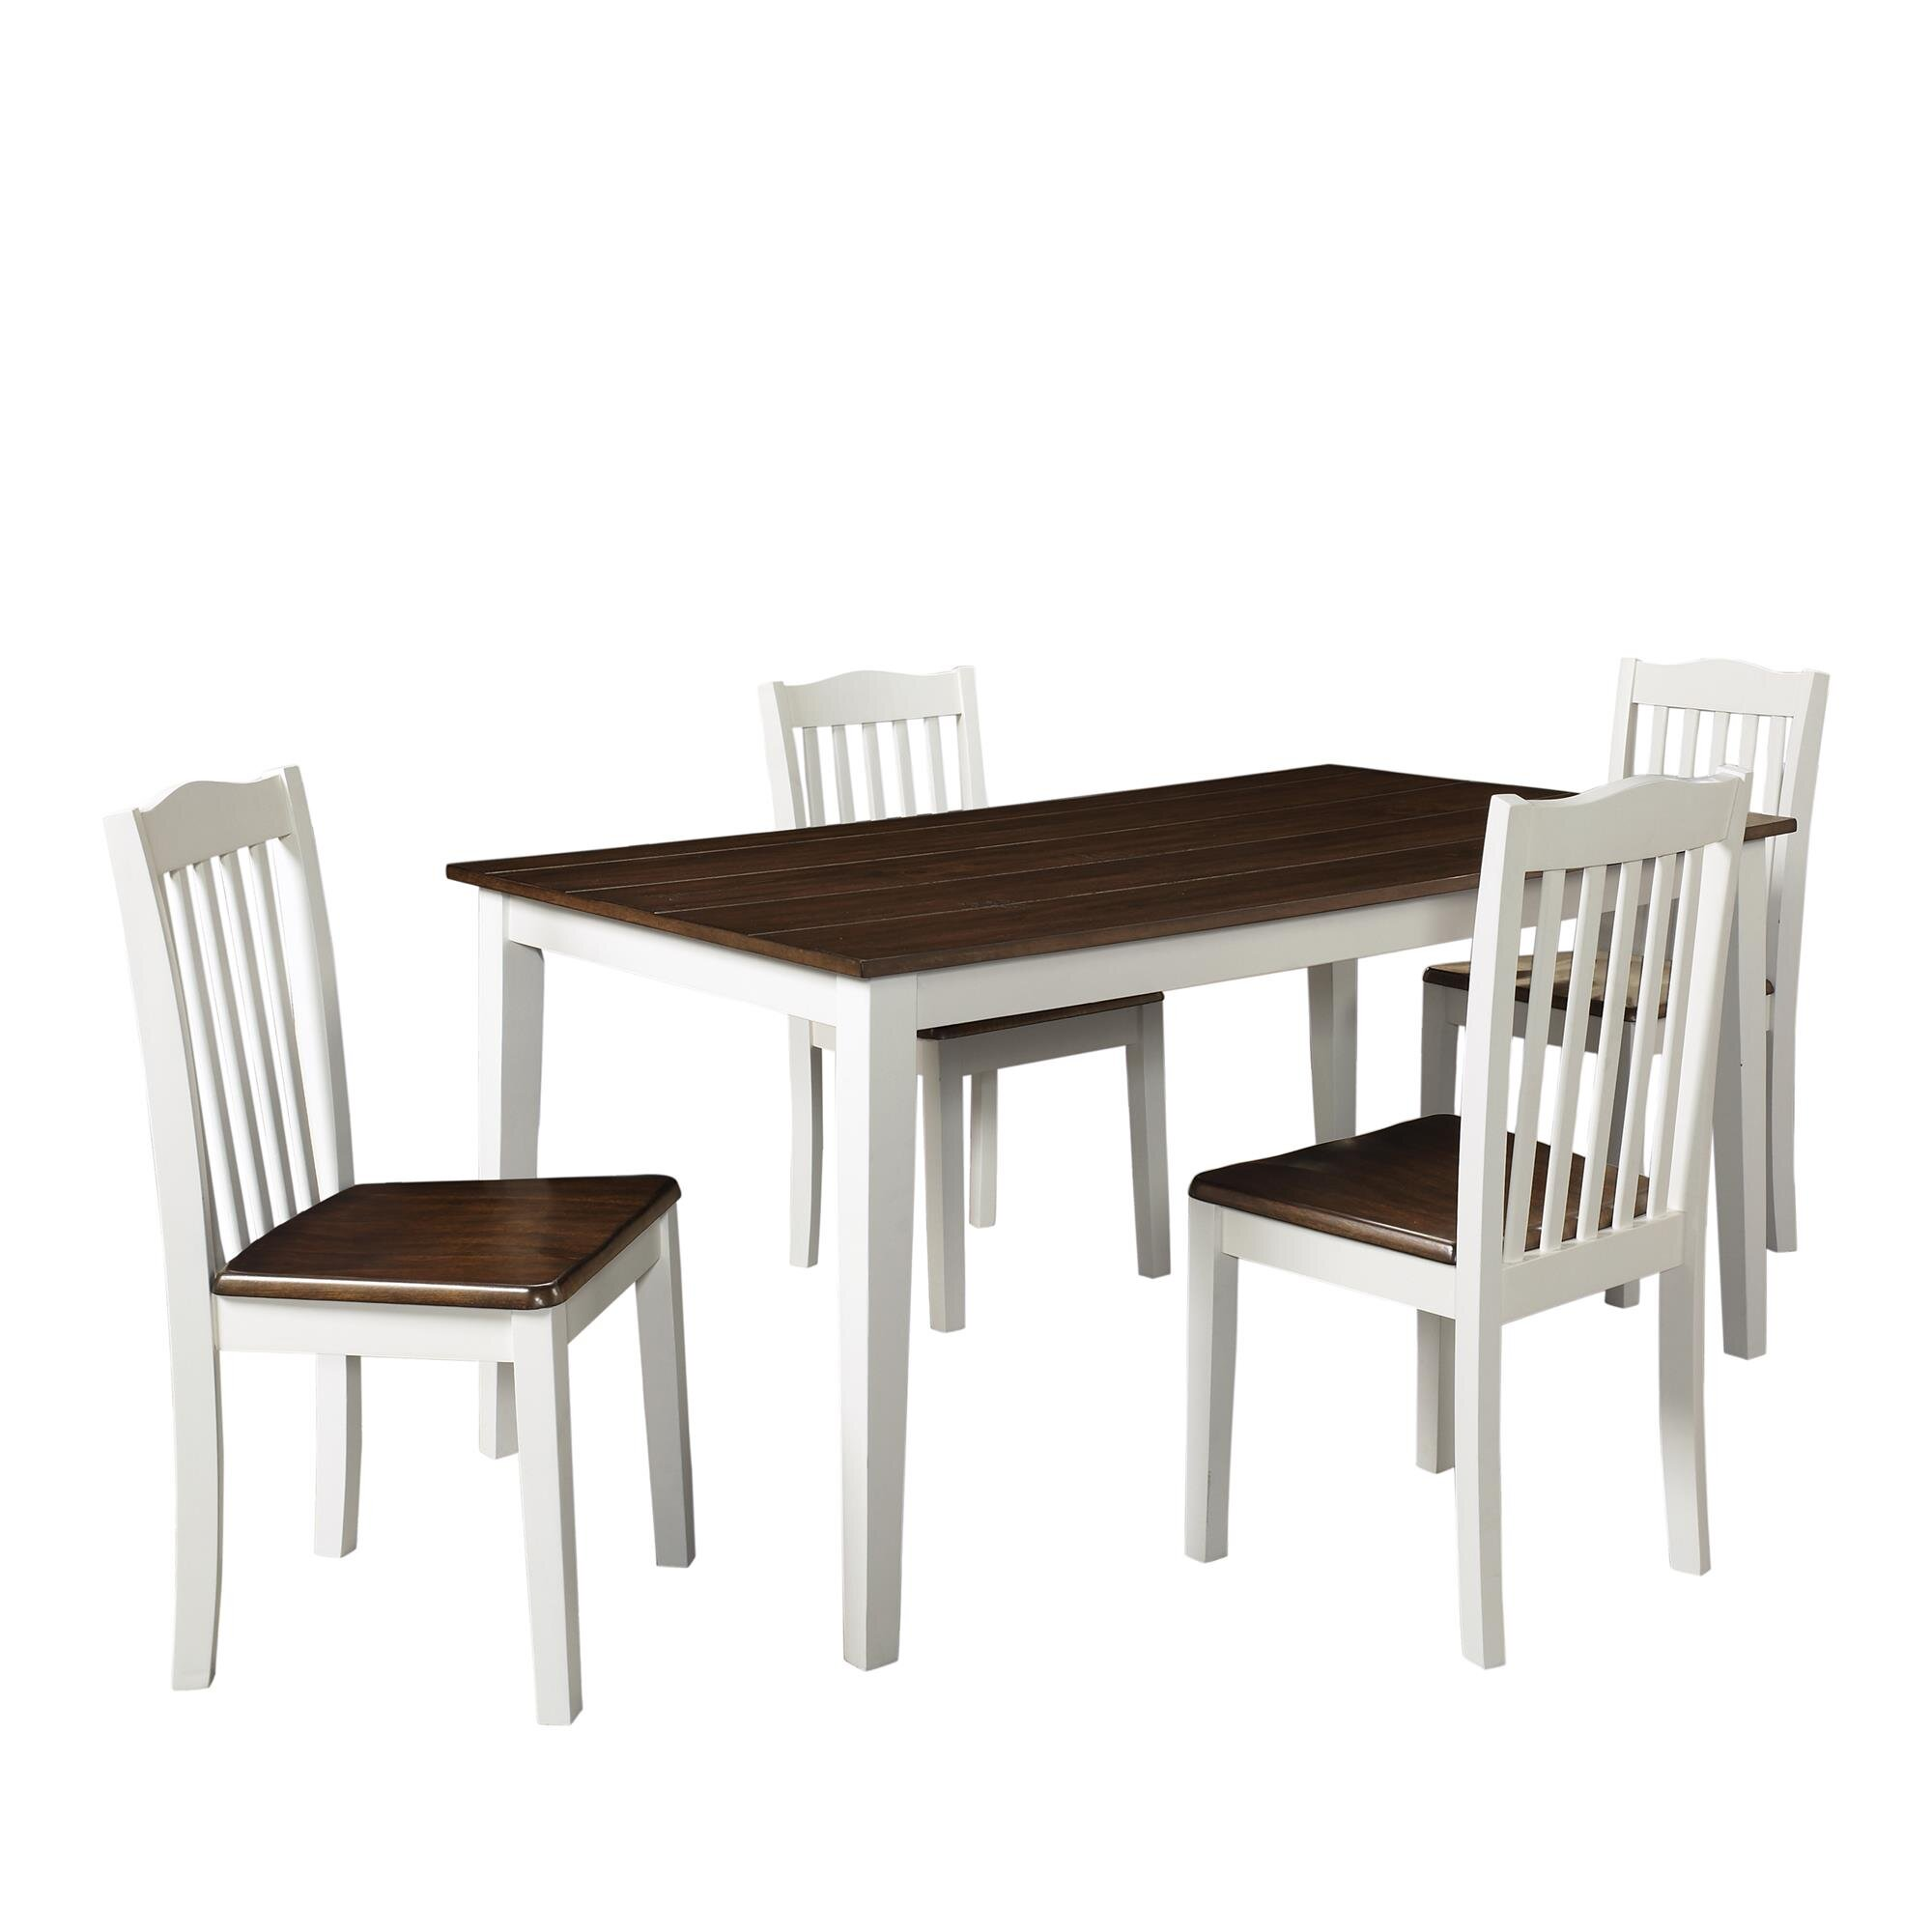 5 Piece Espresso Kitchen Dining Room Sets You Ll Love In 2021 Wayfair